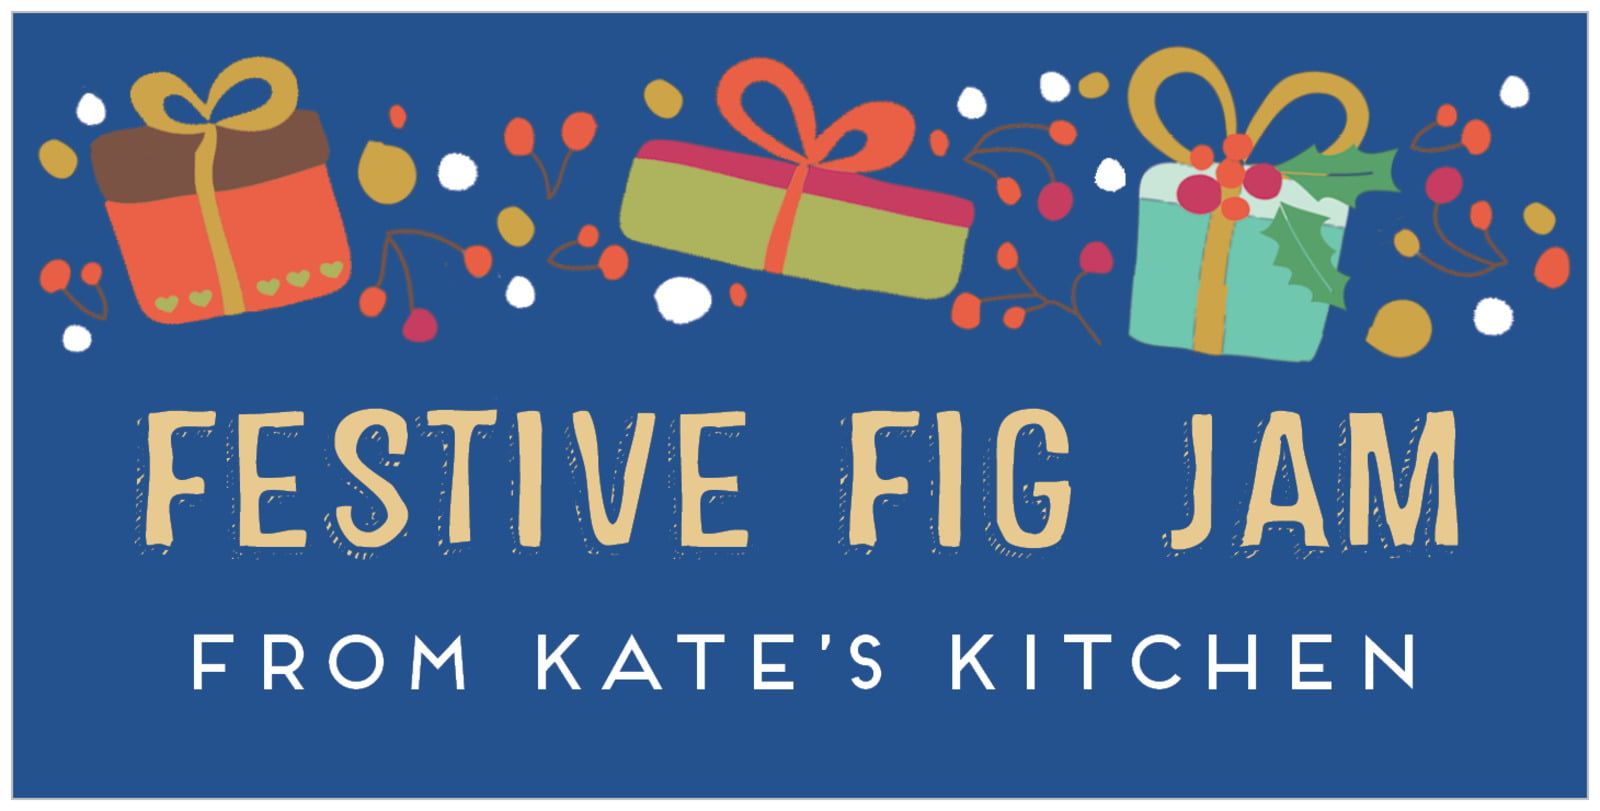 small rectangular food/craft labels - deep blue - festive gifts (set of 24)